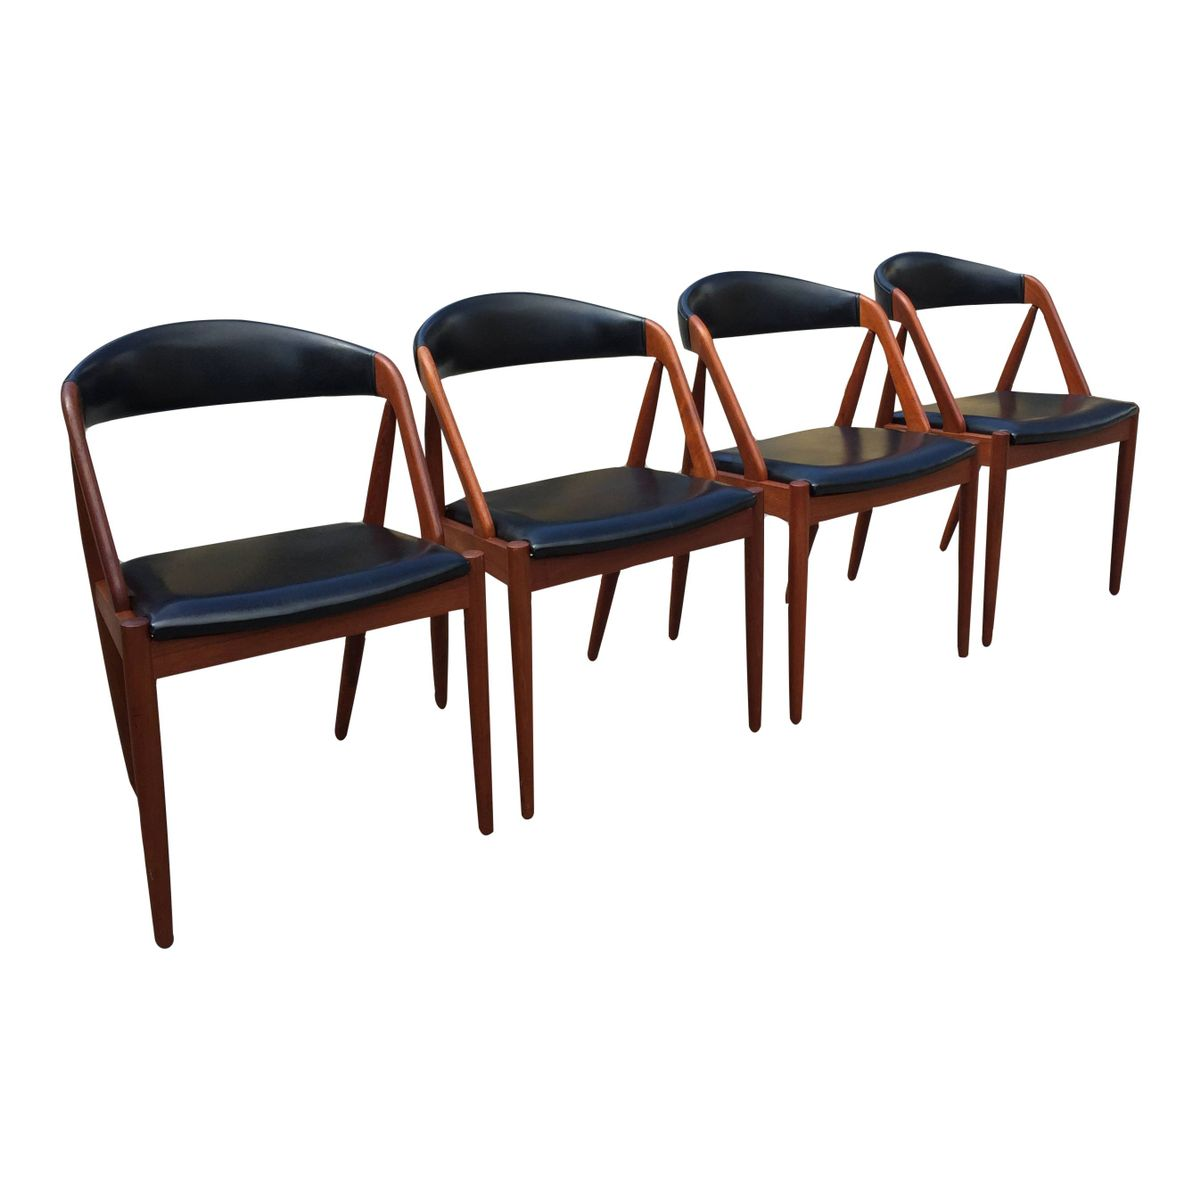 Teak leather dining chairs by kai kristiansen for gudme m belfabrik set of 4 for sale at pamono - Kai kristiansen chairs ...